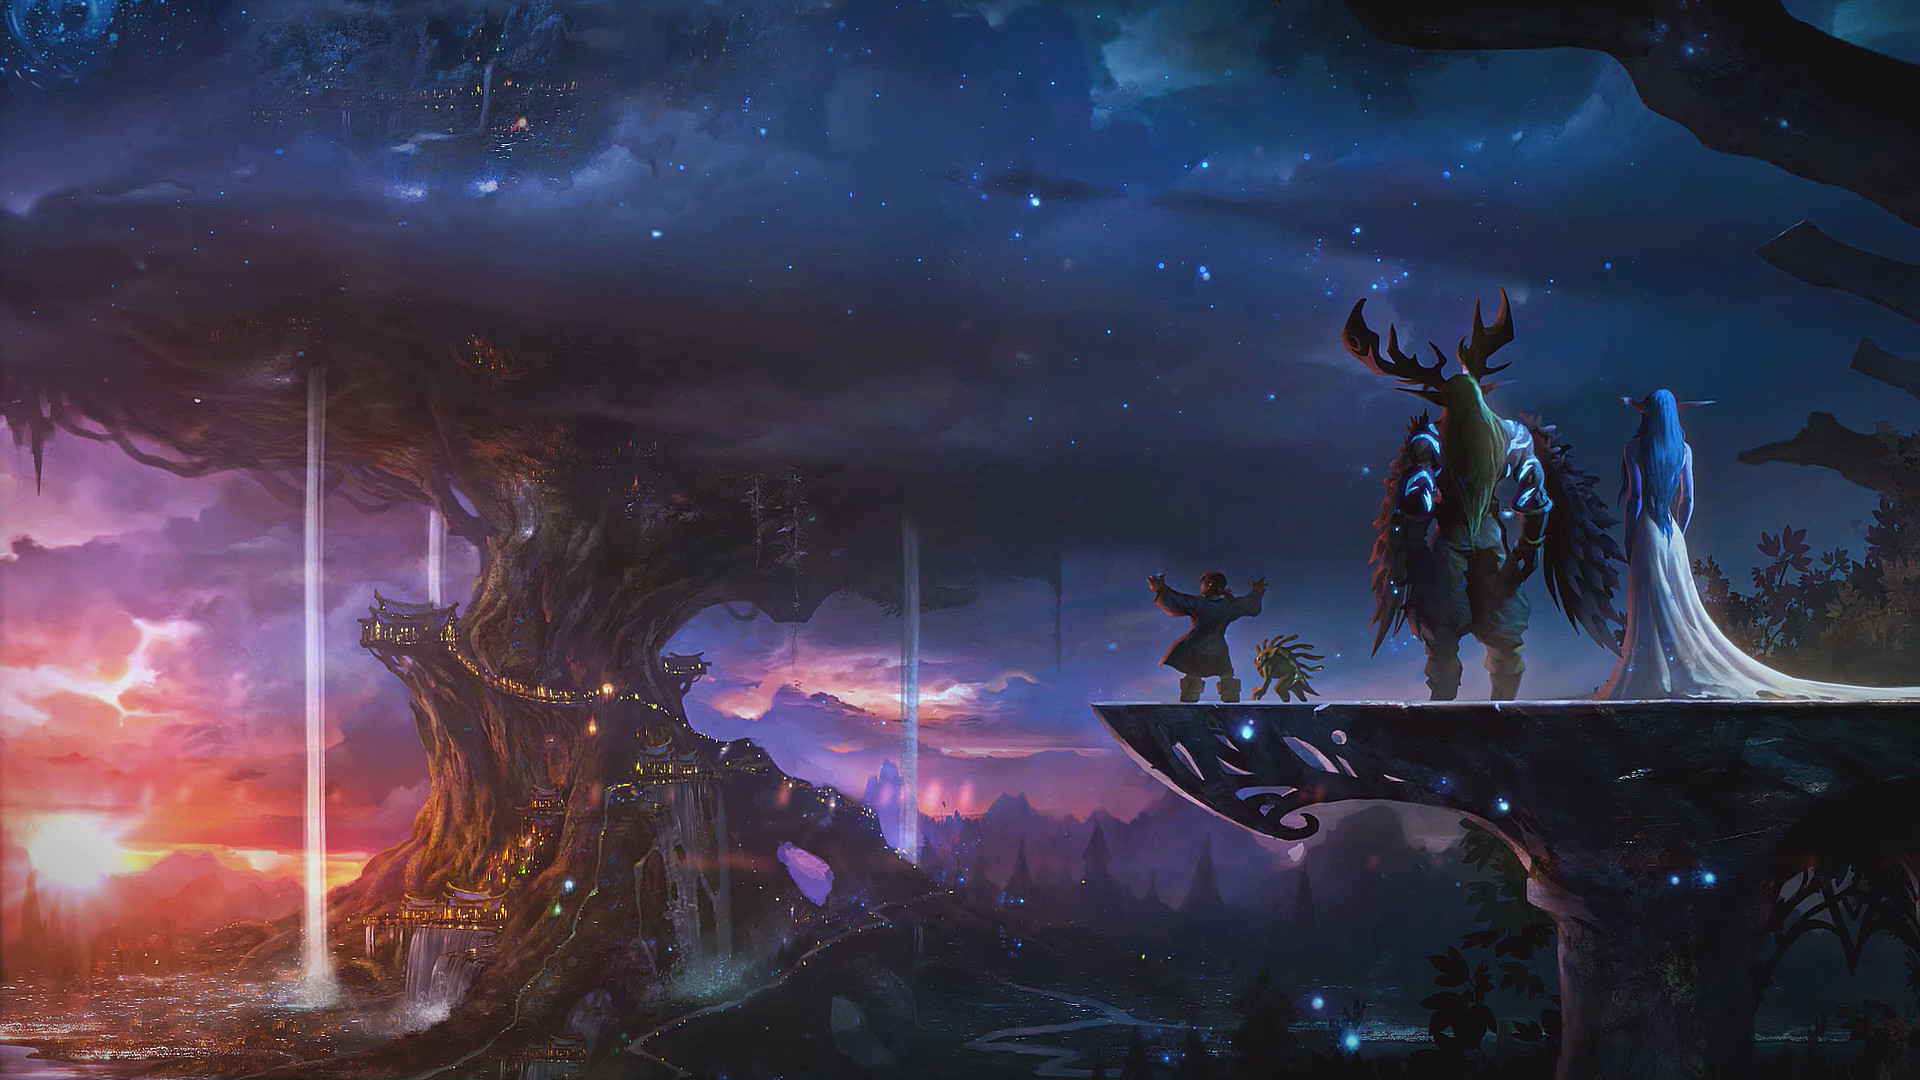 World Of Warcraft Wallpaper Bfa: WoW Alliance Wallpaper (79+ Images